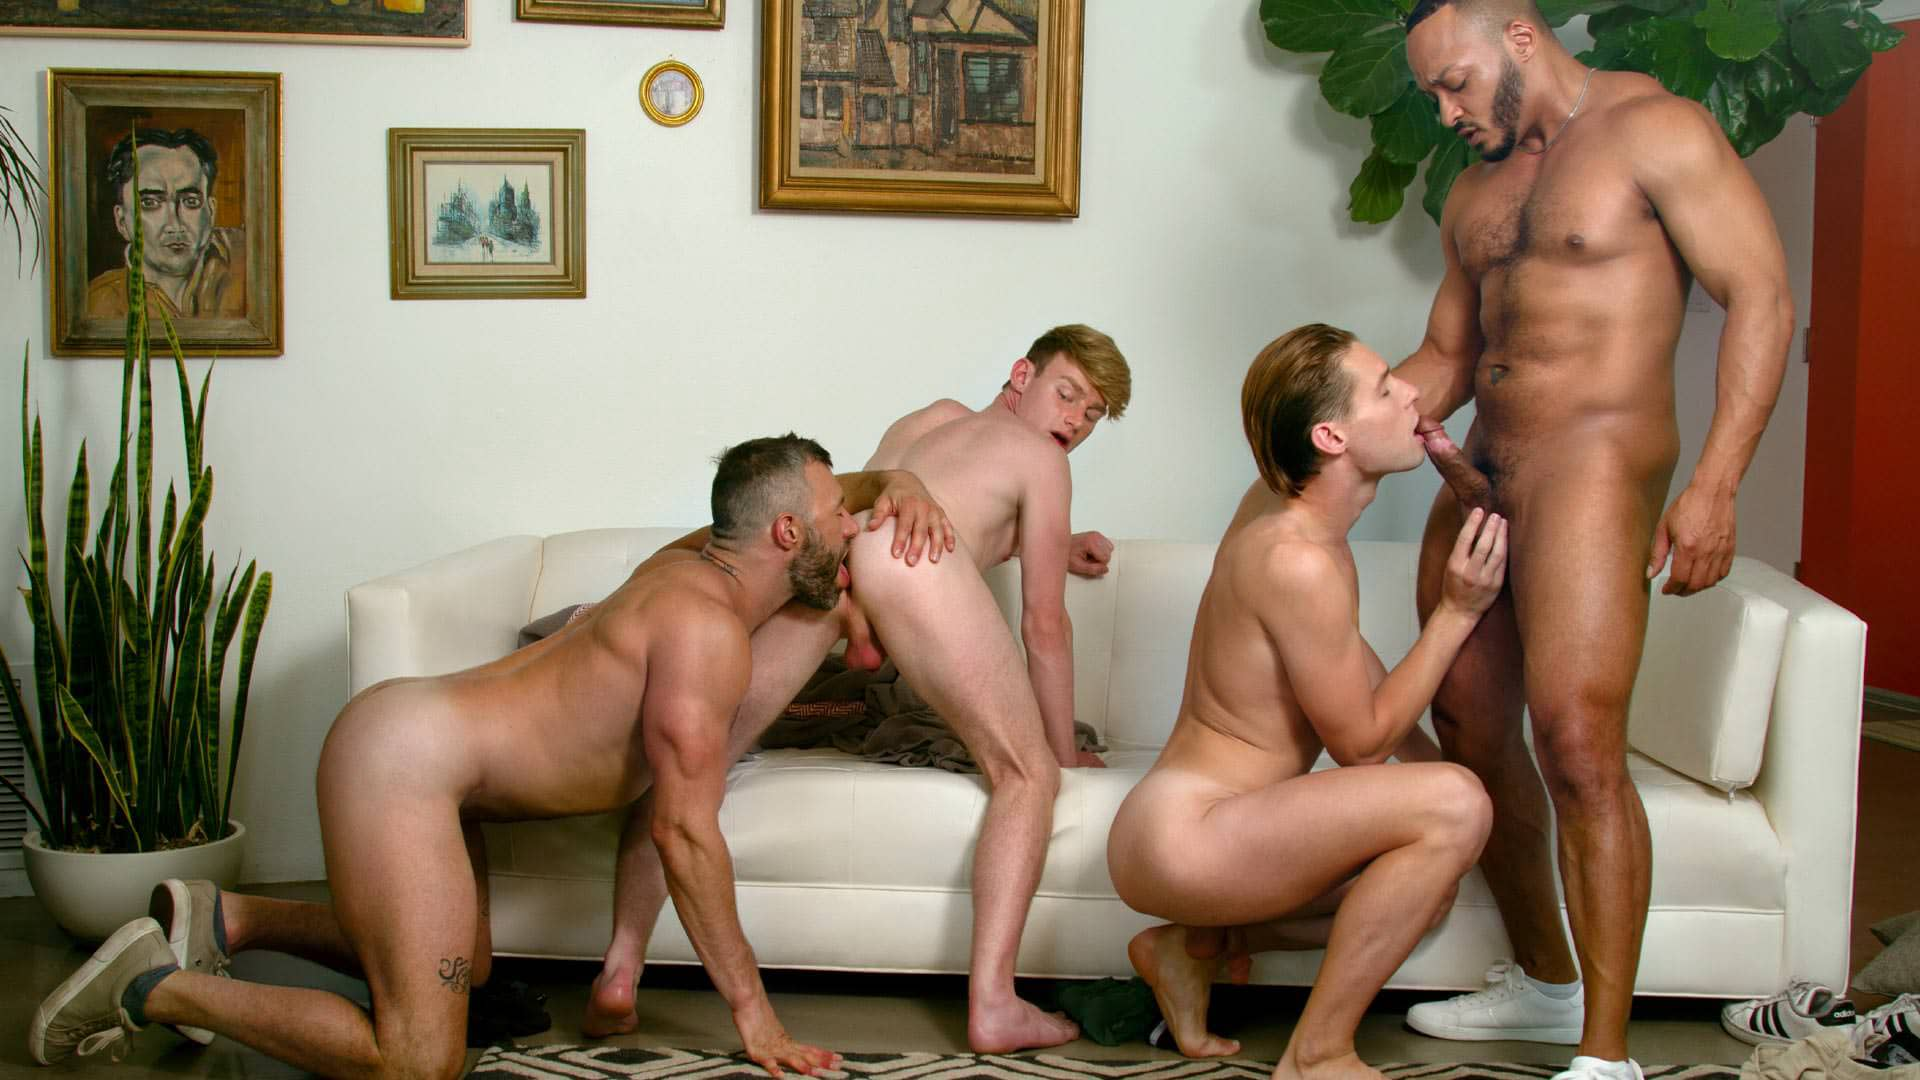 Making The Grade, Scene 5 – Dillon Diaz, Cole Connor, Eric Charming and Shae Reynolds